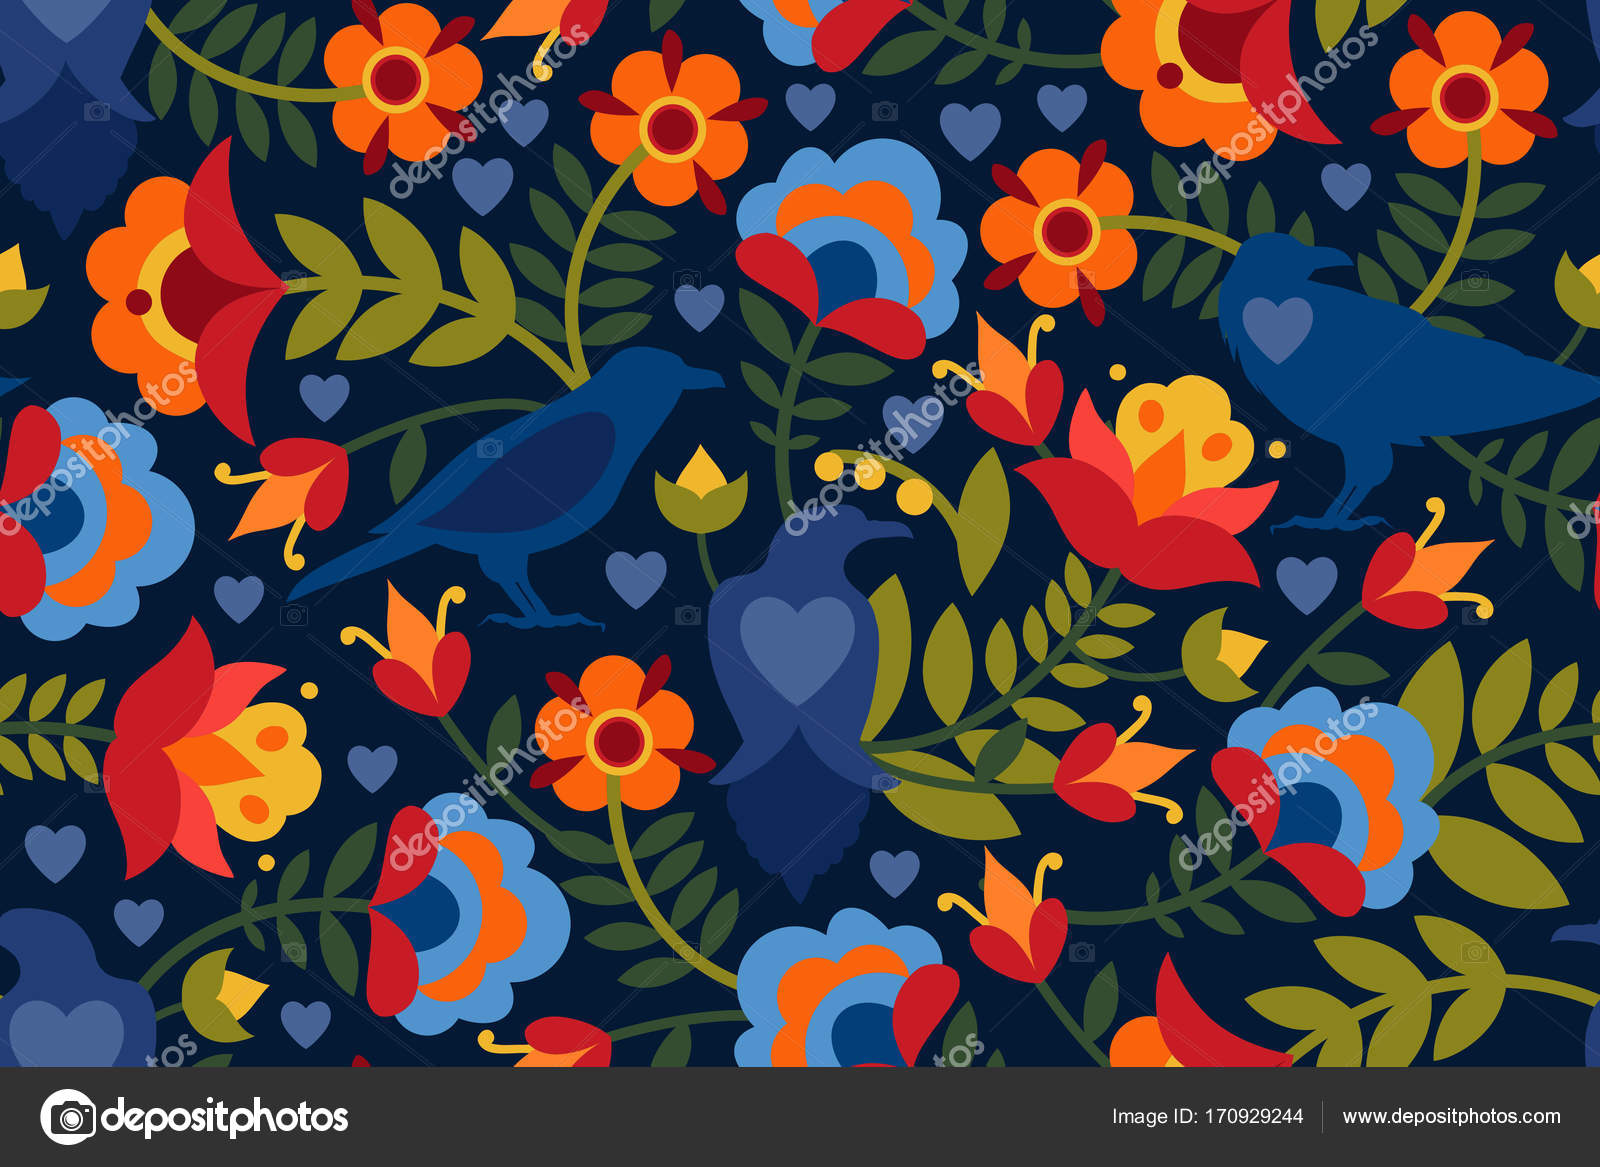 seamless pattern with raven symbols of the heart and flowers background with flat shapes in. Black Bedroom Furniture Sets. Home Design Ideas